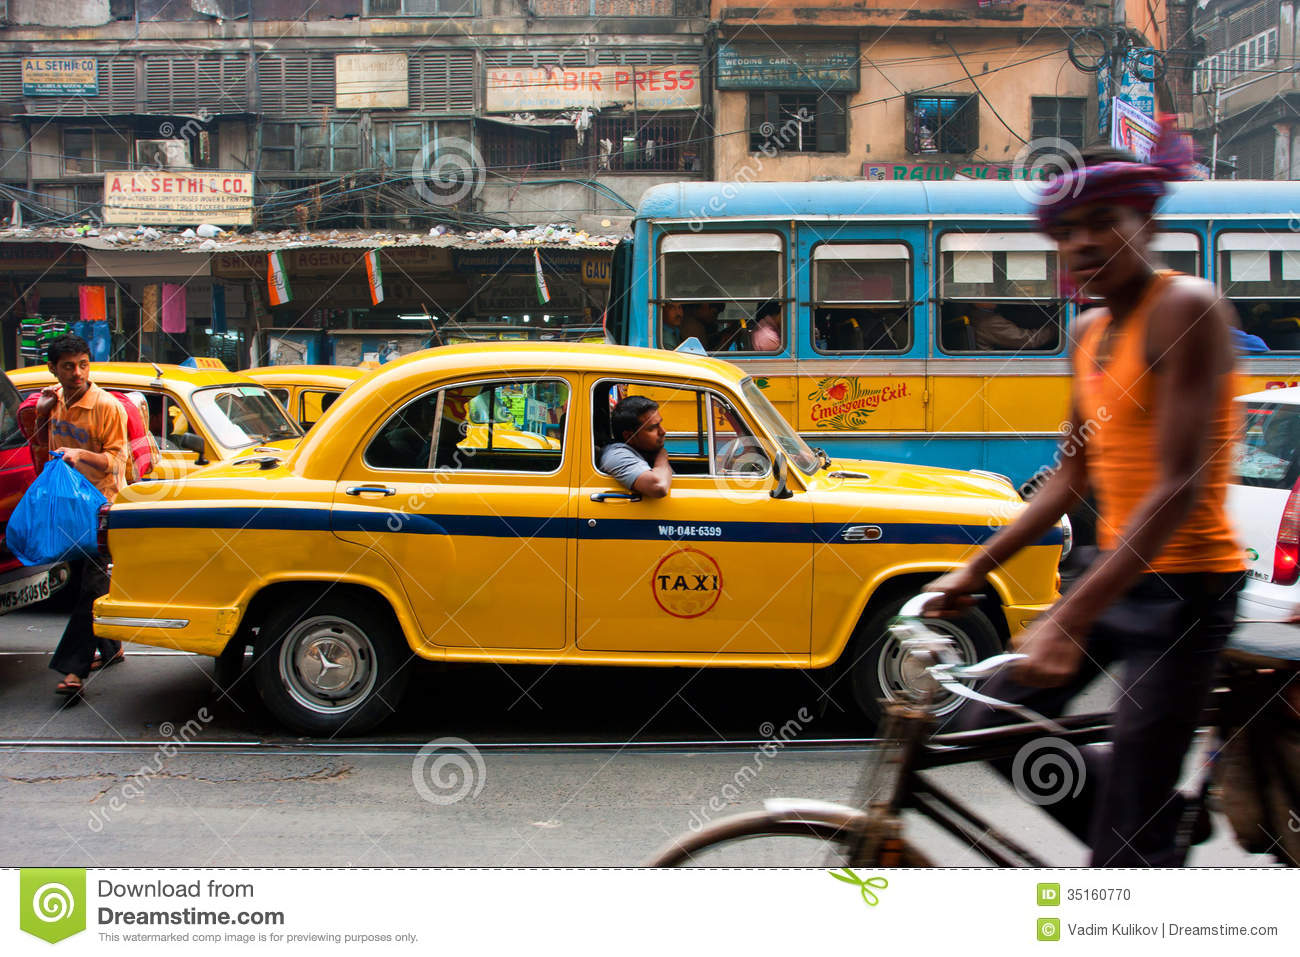 How to Start a Taxi Cab Company